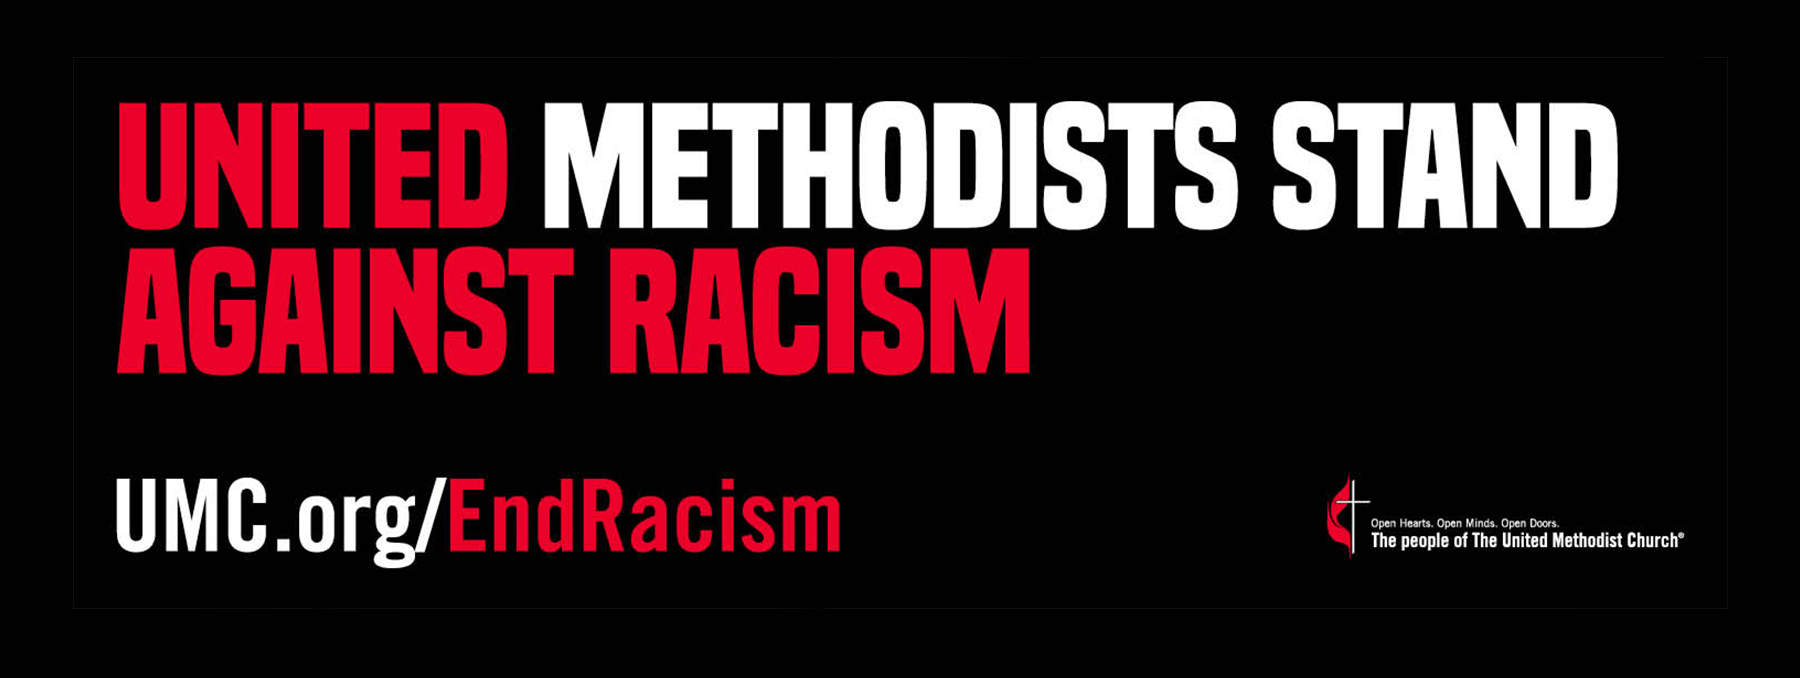 Resources for Resisting the Sin of Racism